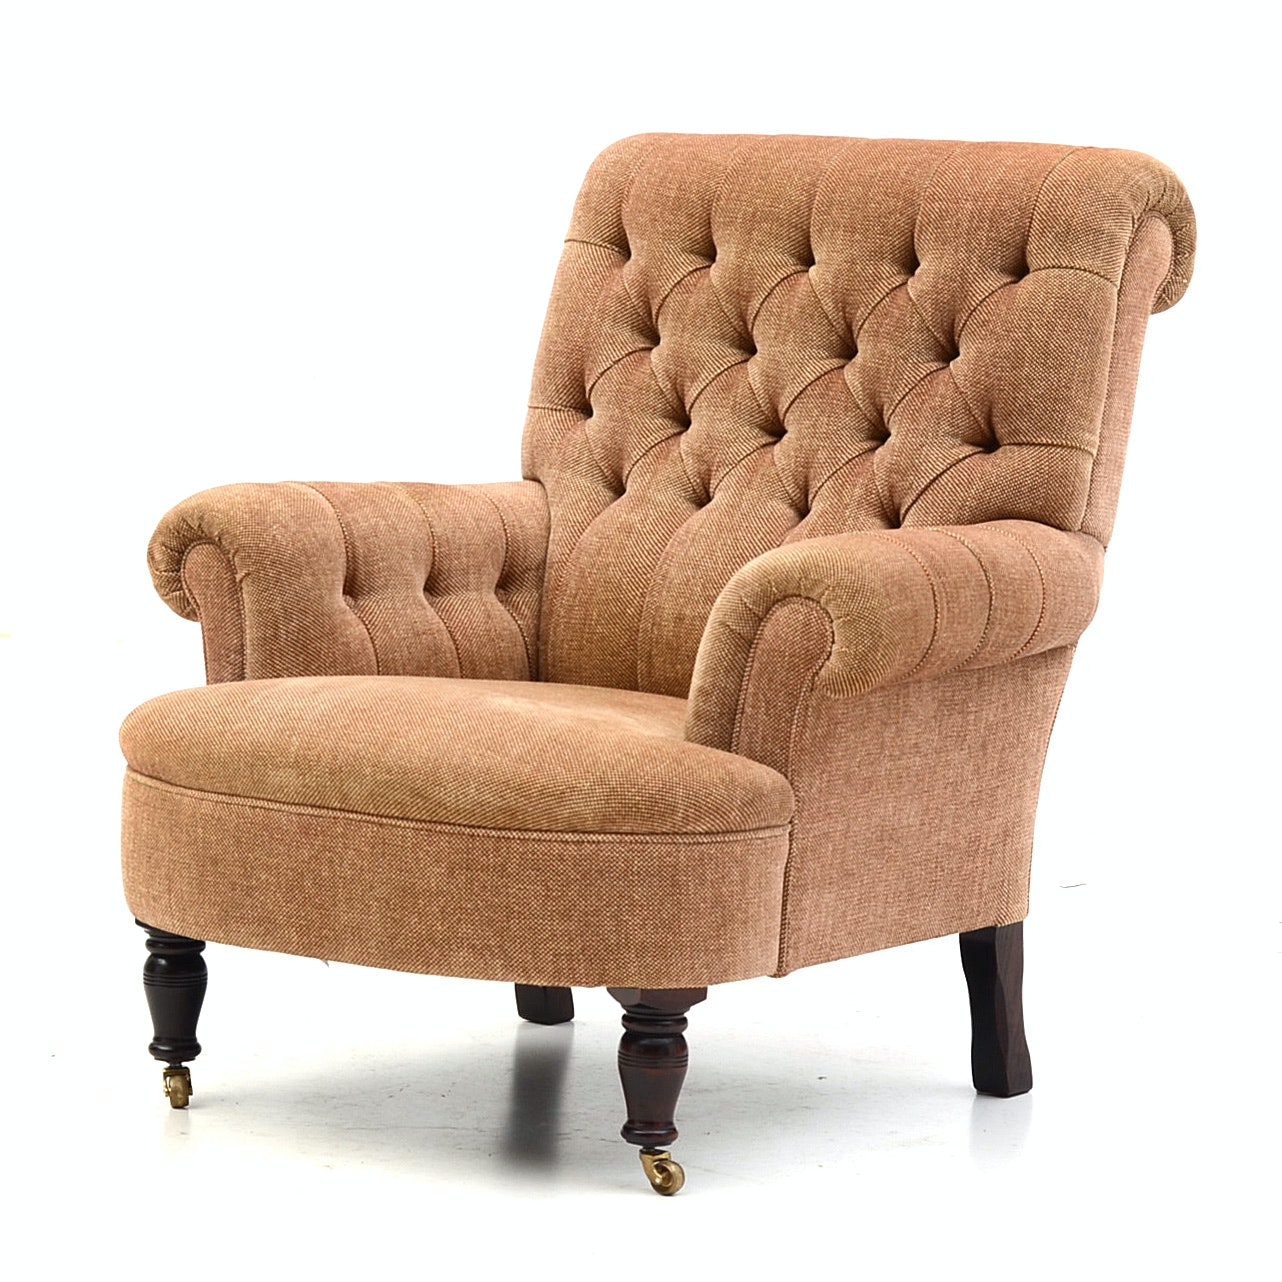 George Smith Ltd. Custom Upholstered Chair ...